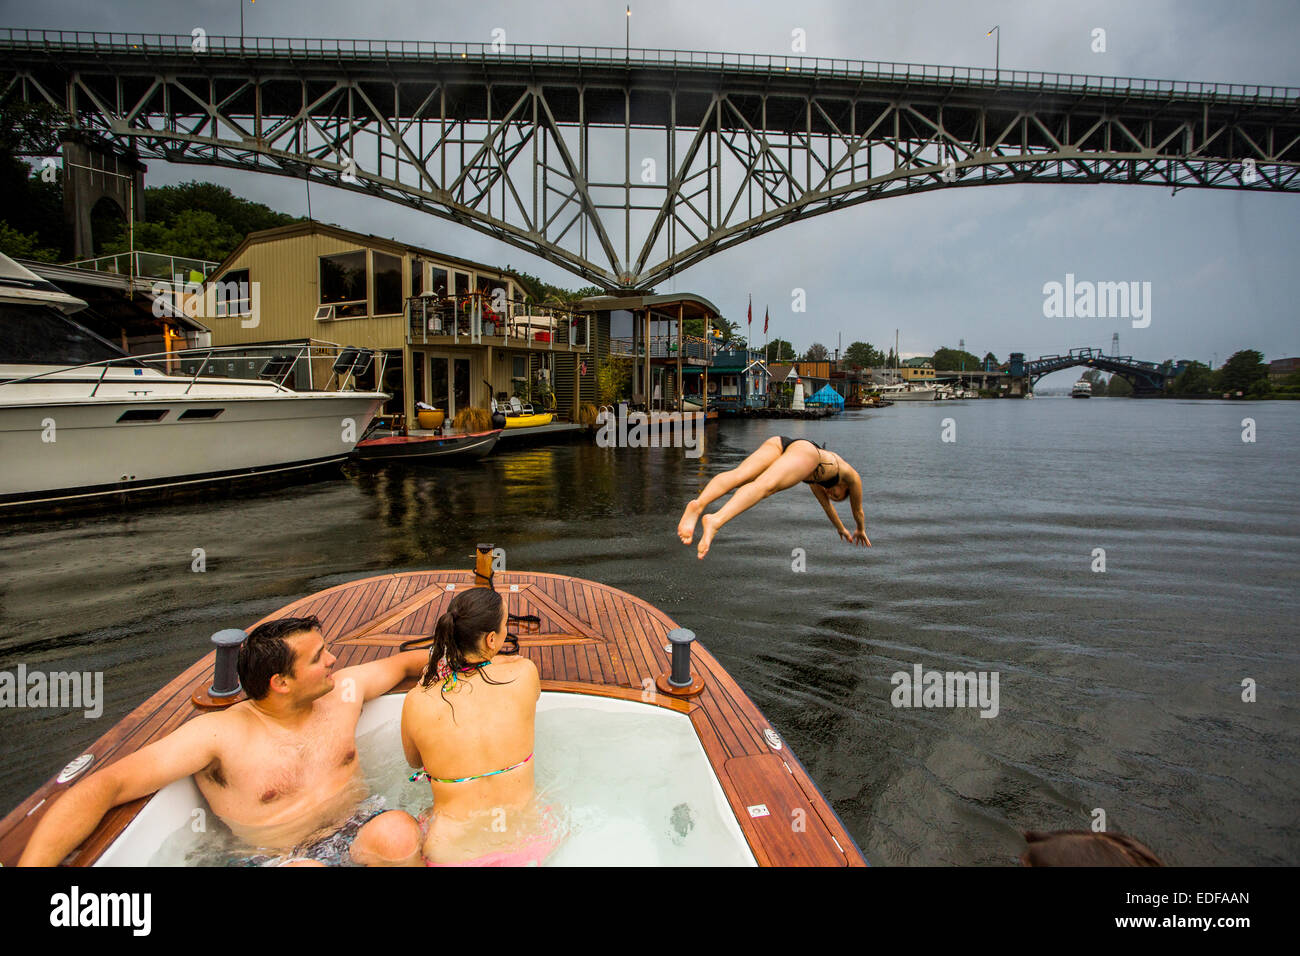 A young woman dives off the bow of a hot tub boat in Lake Union during a rain storm. - Stock Image